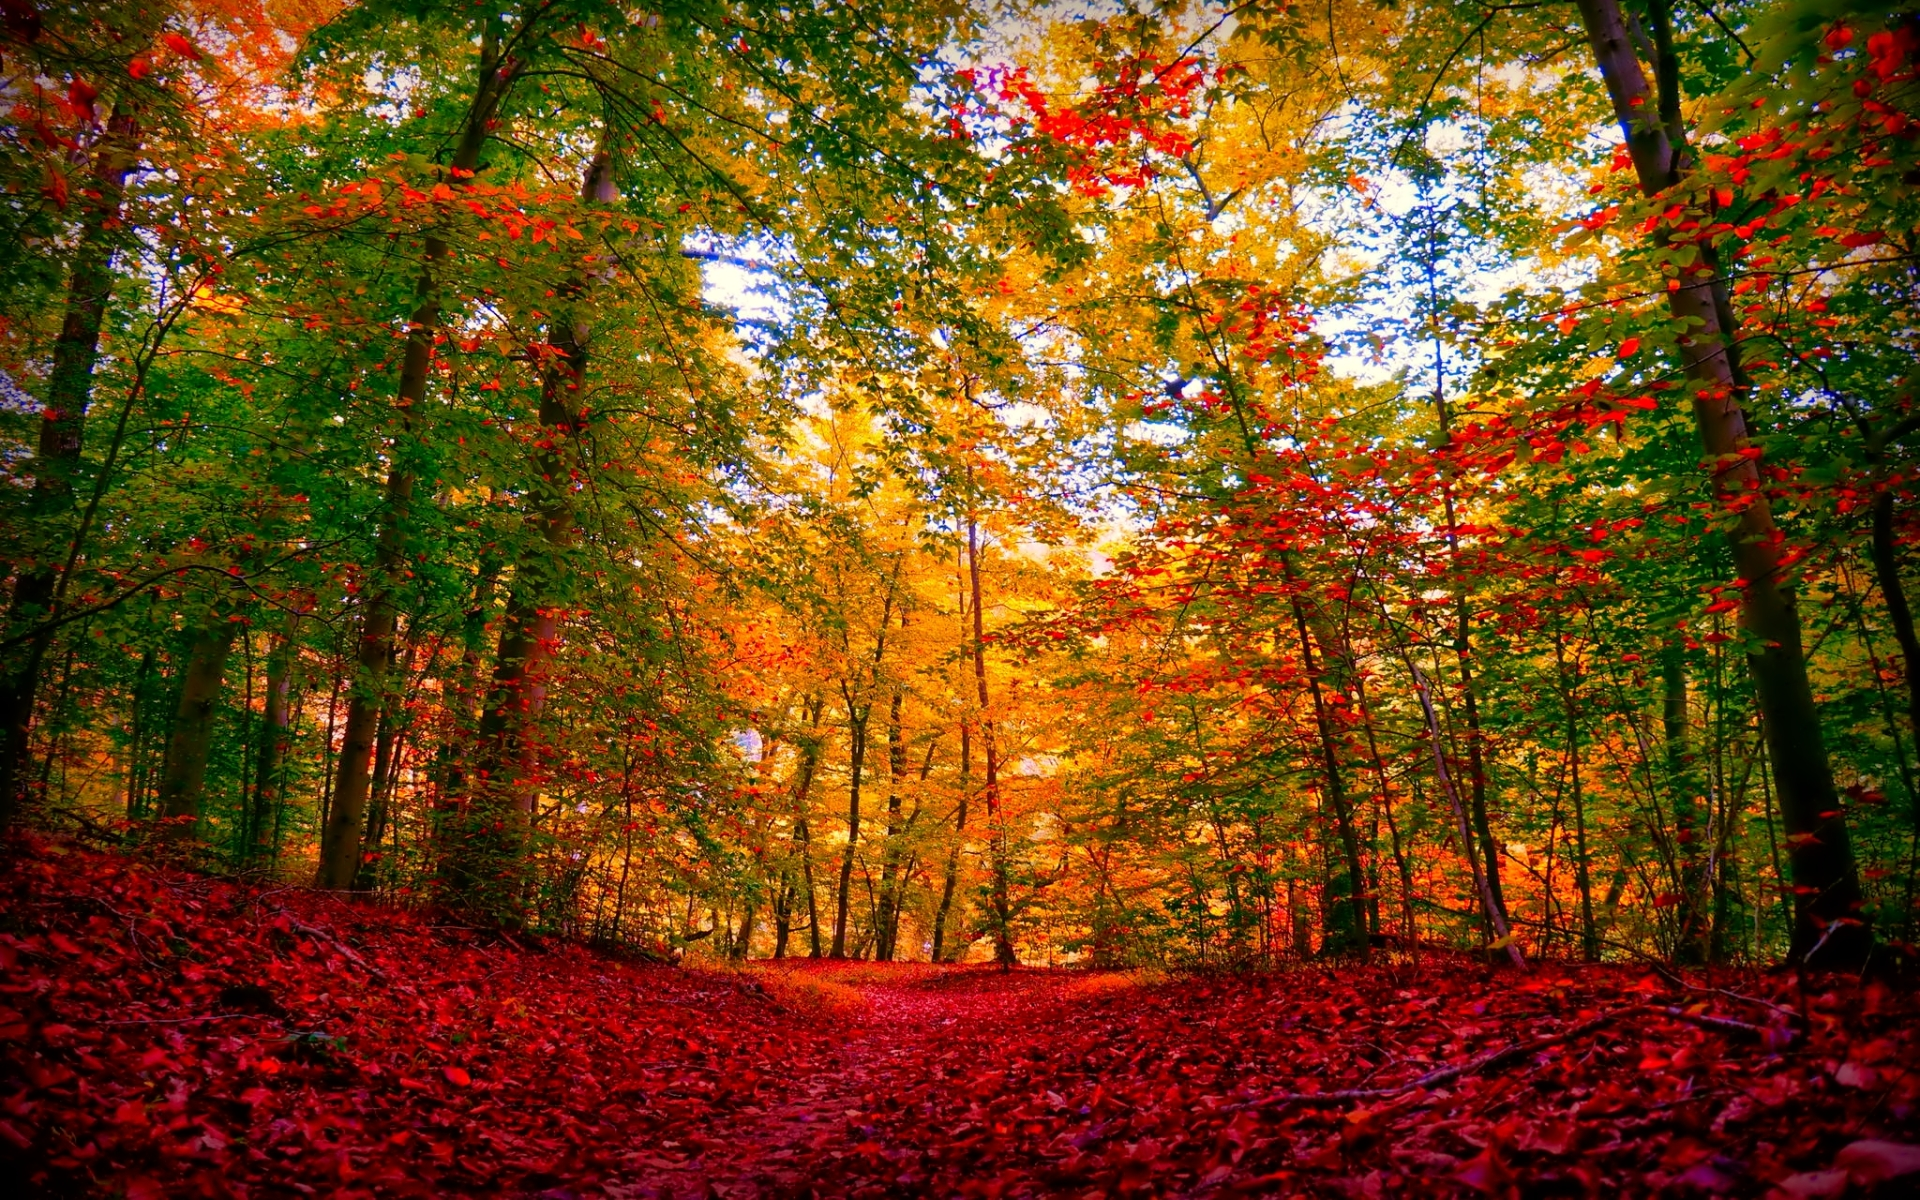 Herbst Wald Amp; Red Carpet Wallpapers_w52904 on Shapes And Colors